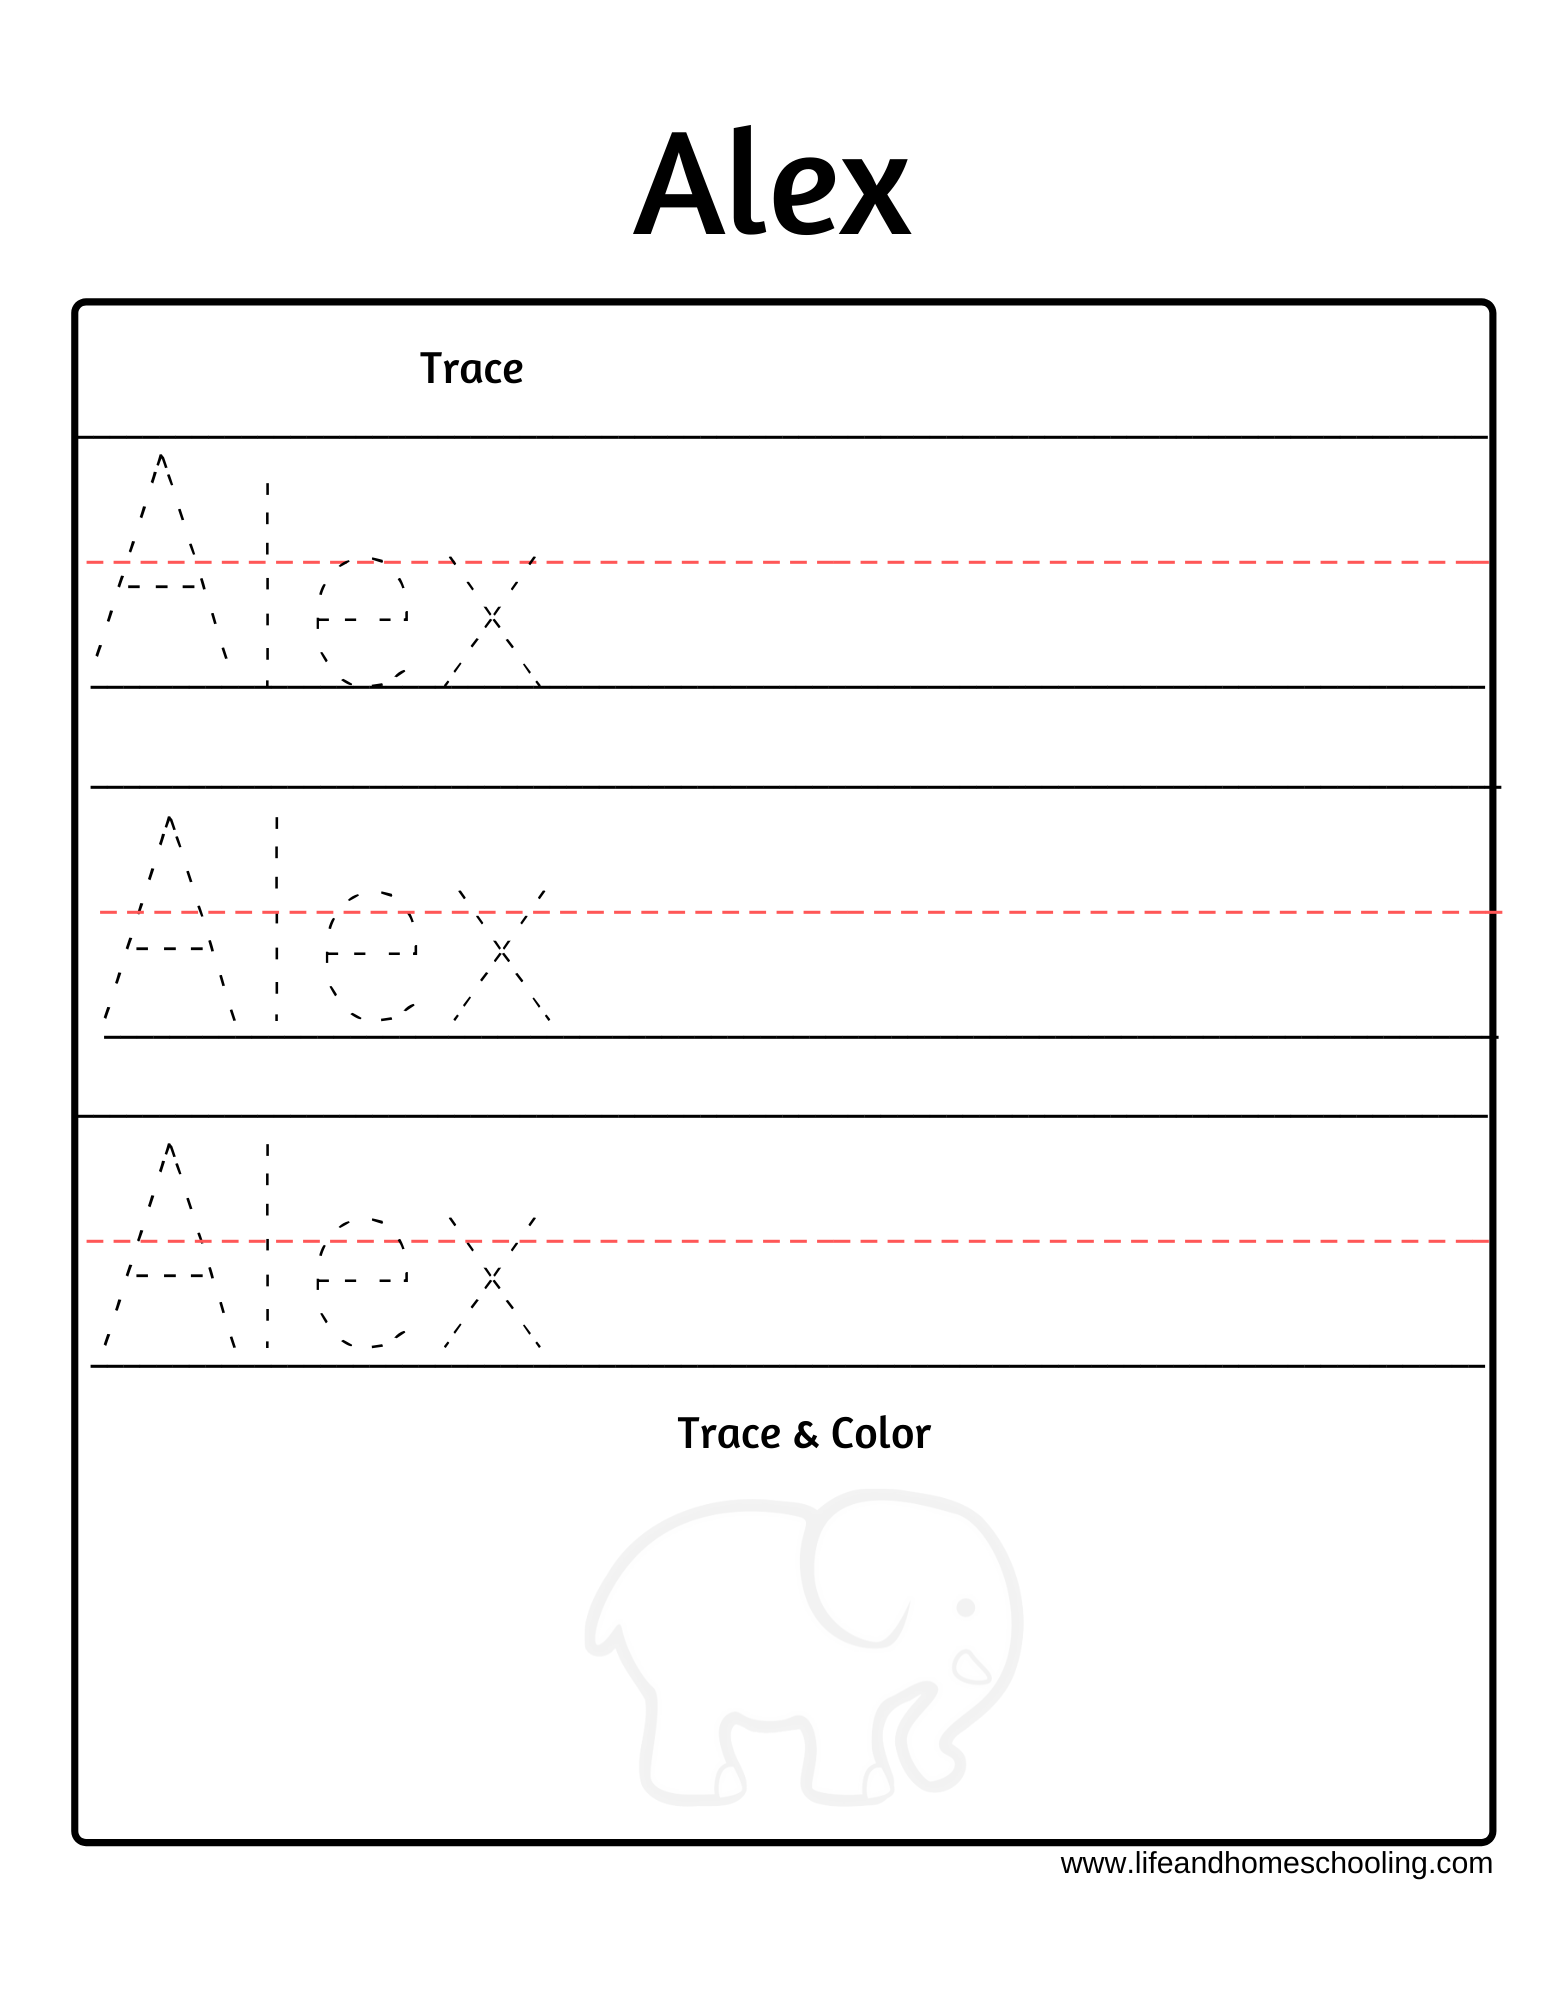 Free Trace My Name Worksheet For Boy Names That Start